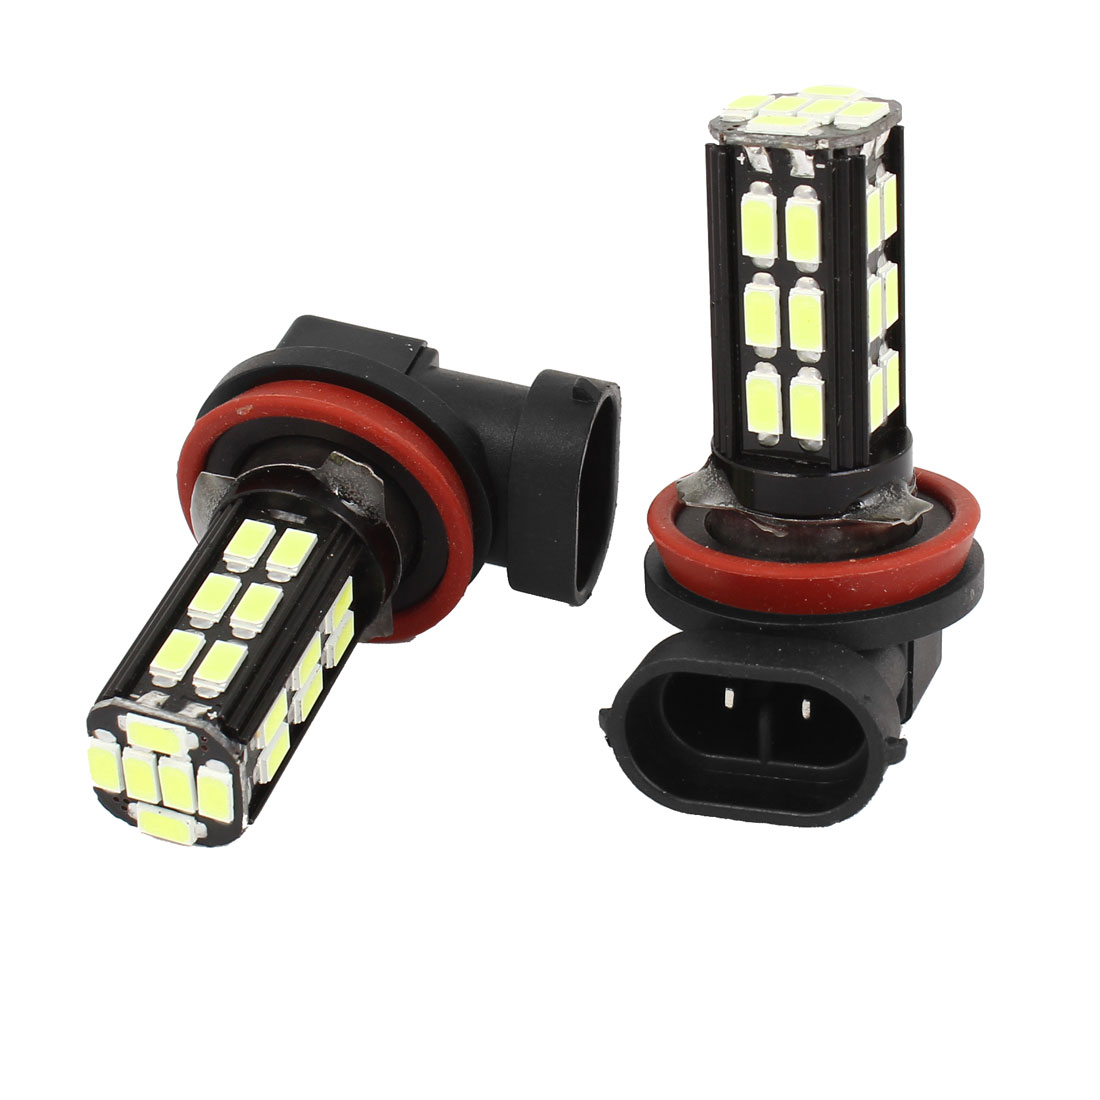 2 Pcs Car H11 5630 30 SMD LED Fog Head Light Bulb Lamp White 12V